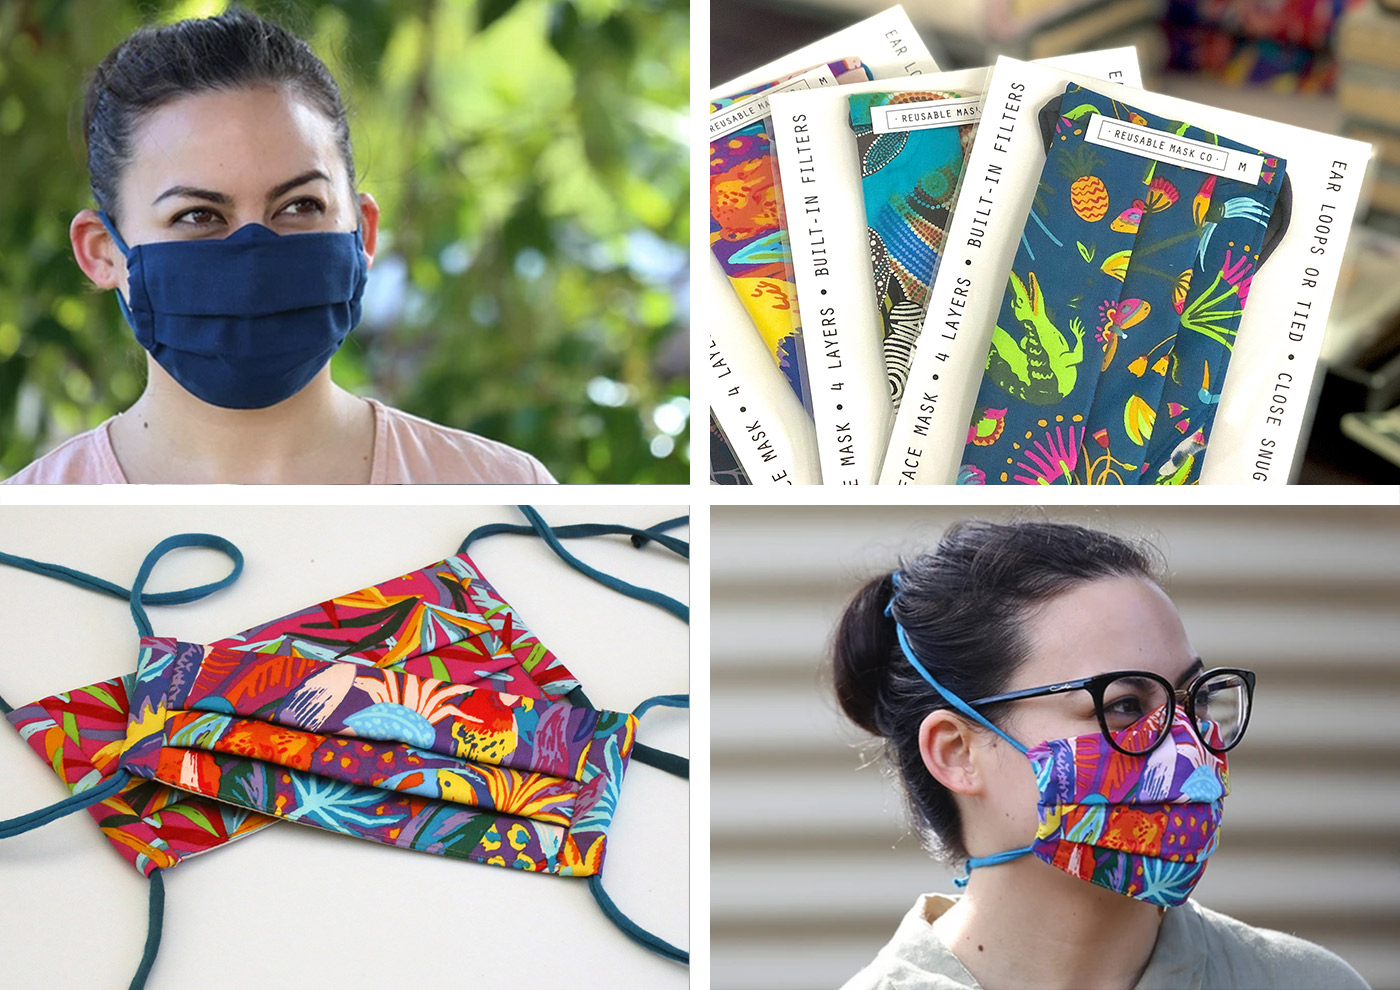 Iris Luckhaus Hybrid Mask by Reusable Mask Co Australia by Sarah Chan